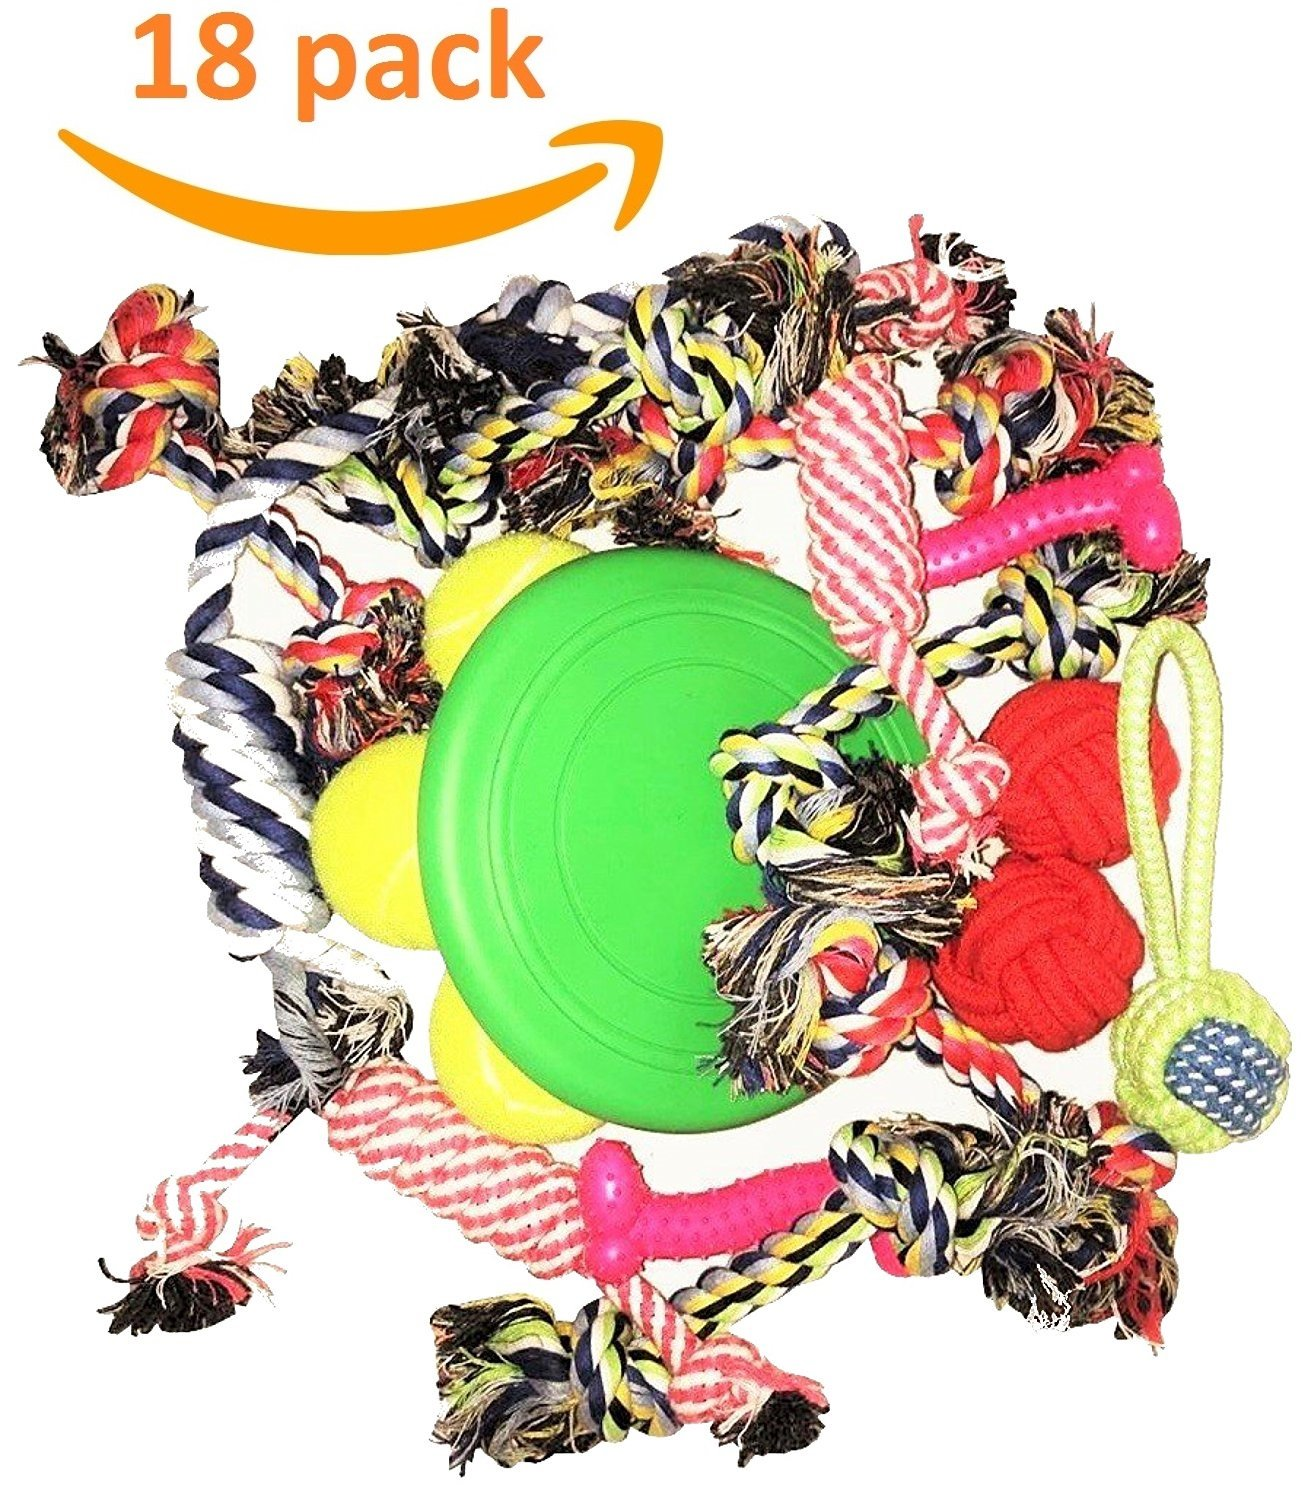 Mascota Pets Dog Toys By Olivia & Aiden - 18 Pack Dog and Puppy Interactive Chew Toys - Rope Toys, Bone Toys, Silicone Frisbee, 3 Dog Tennis Balls Dog Training Set With Interactive Knot Toys